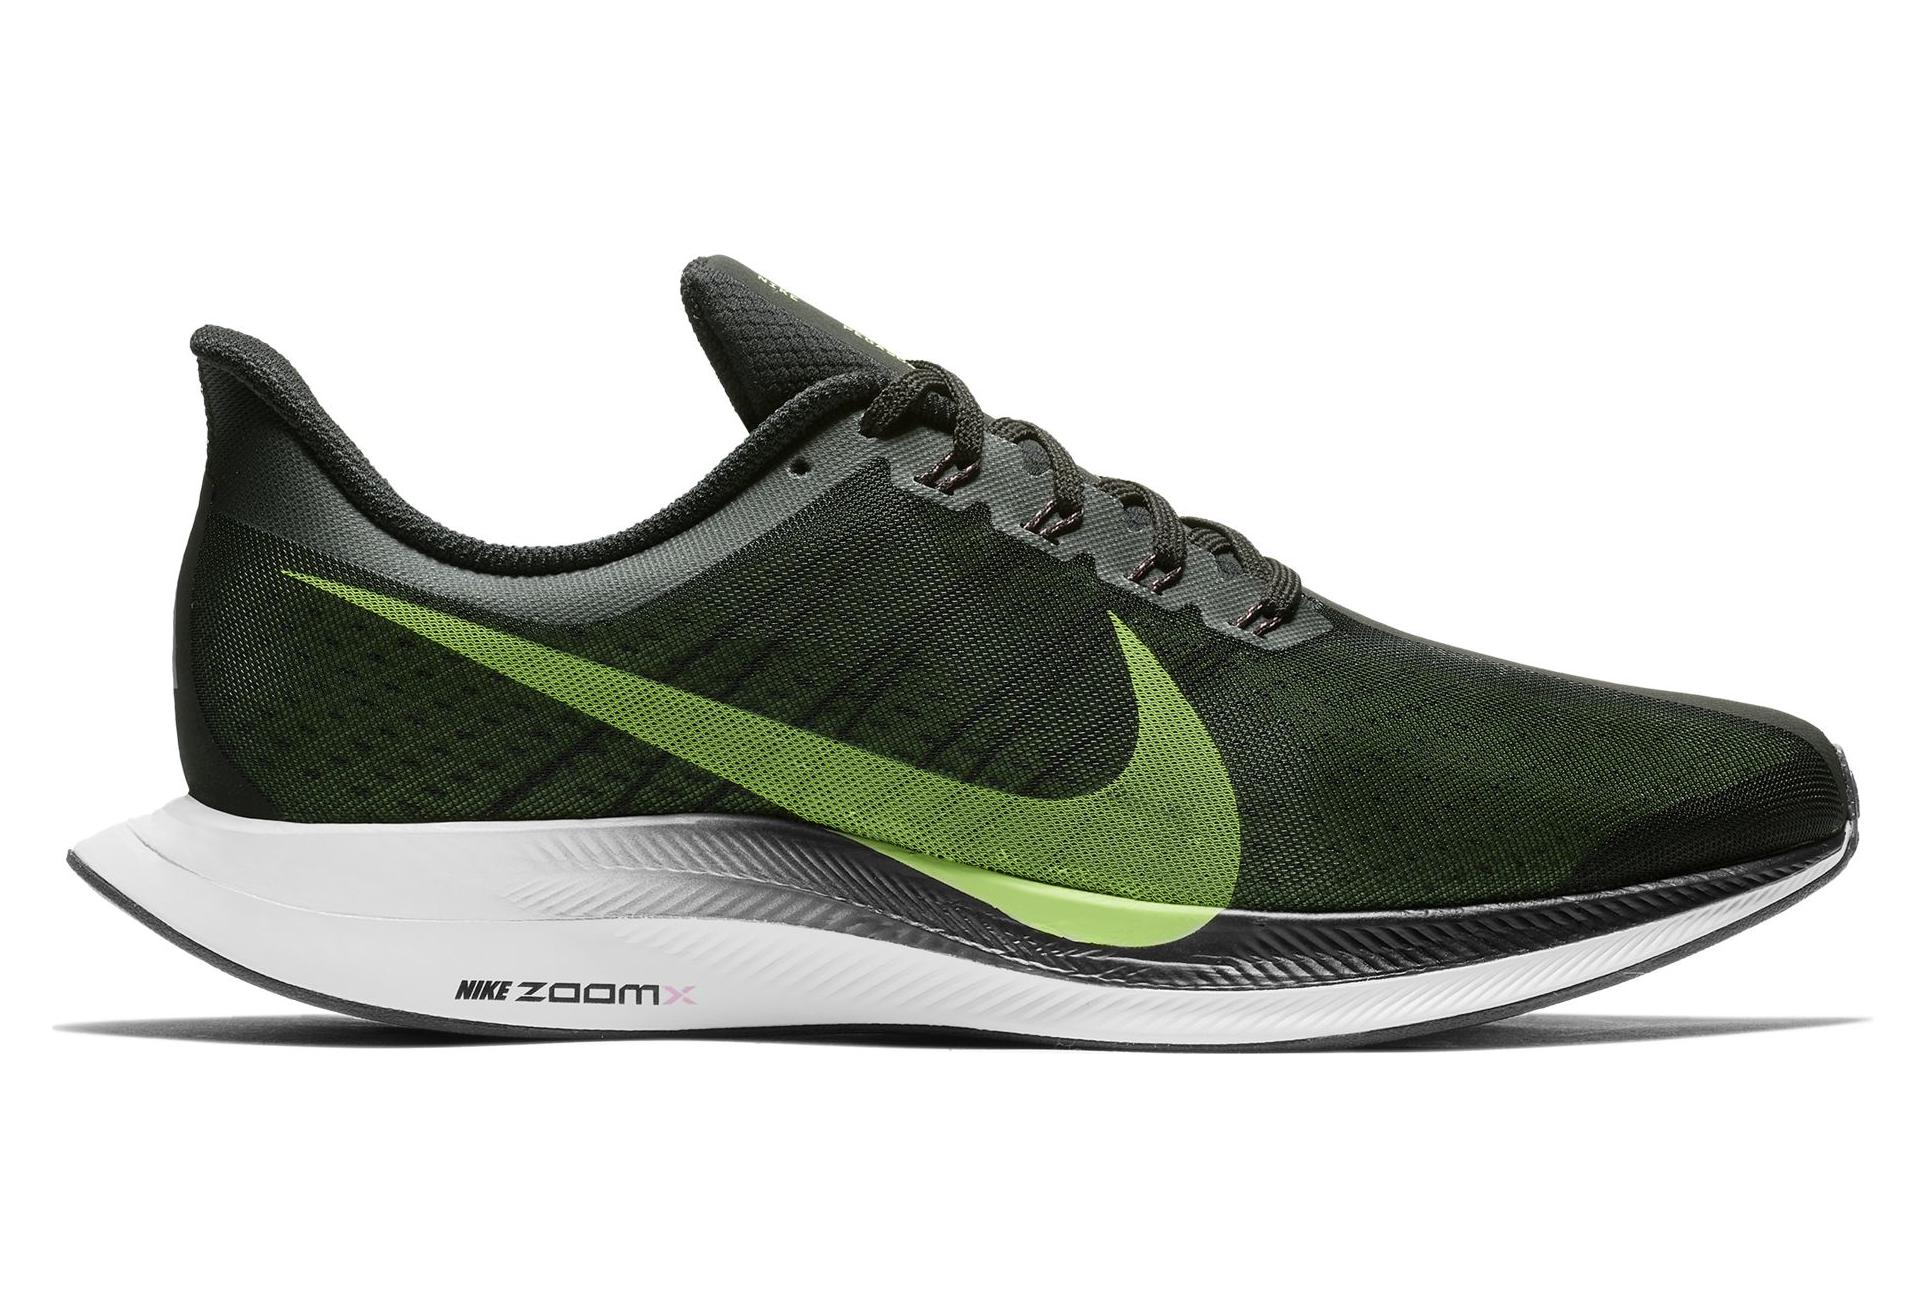 d215c0f0ab79e Running Shoe Reviews  Nike Zoom Pegasus 35 Turbo - Runner s Tribe